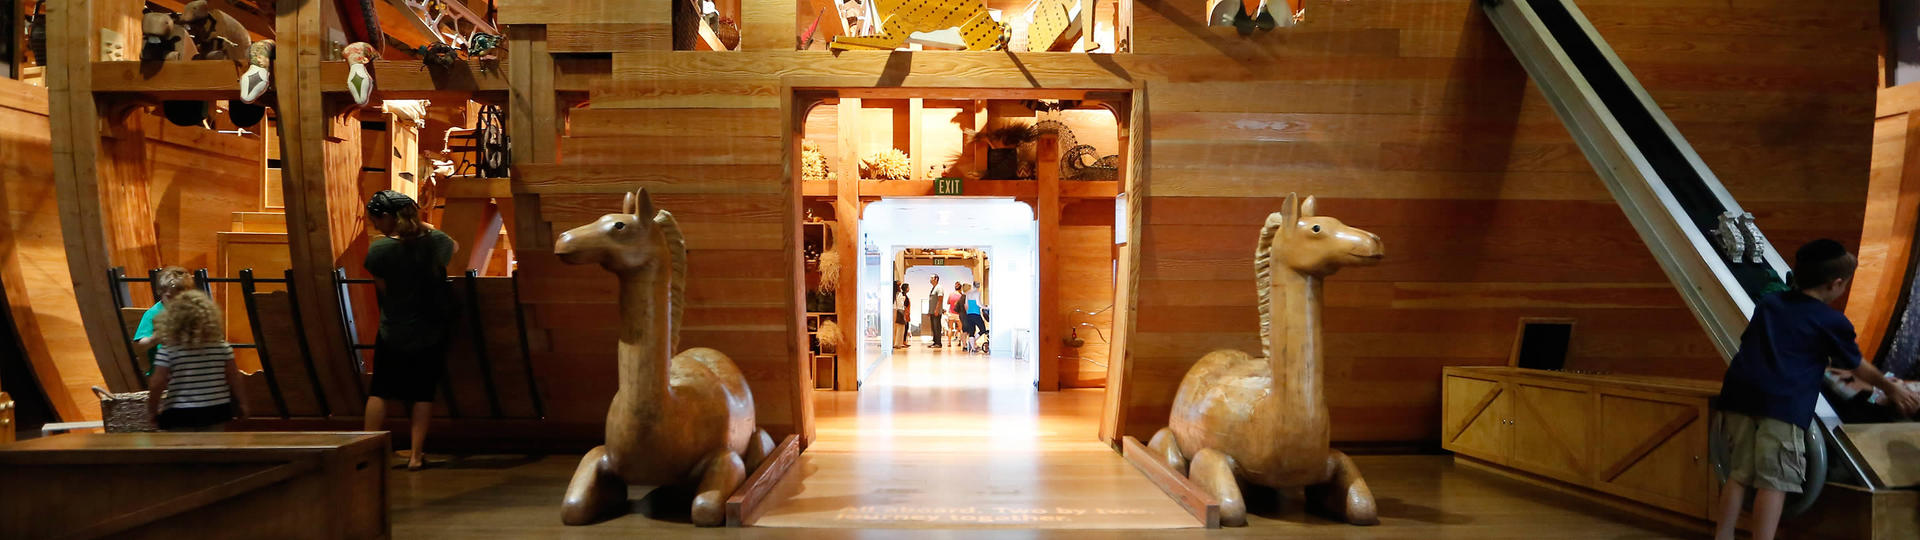 Wooden camels guarding the entrance to Noah's Ark